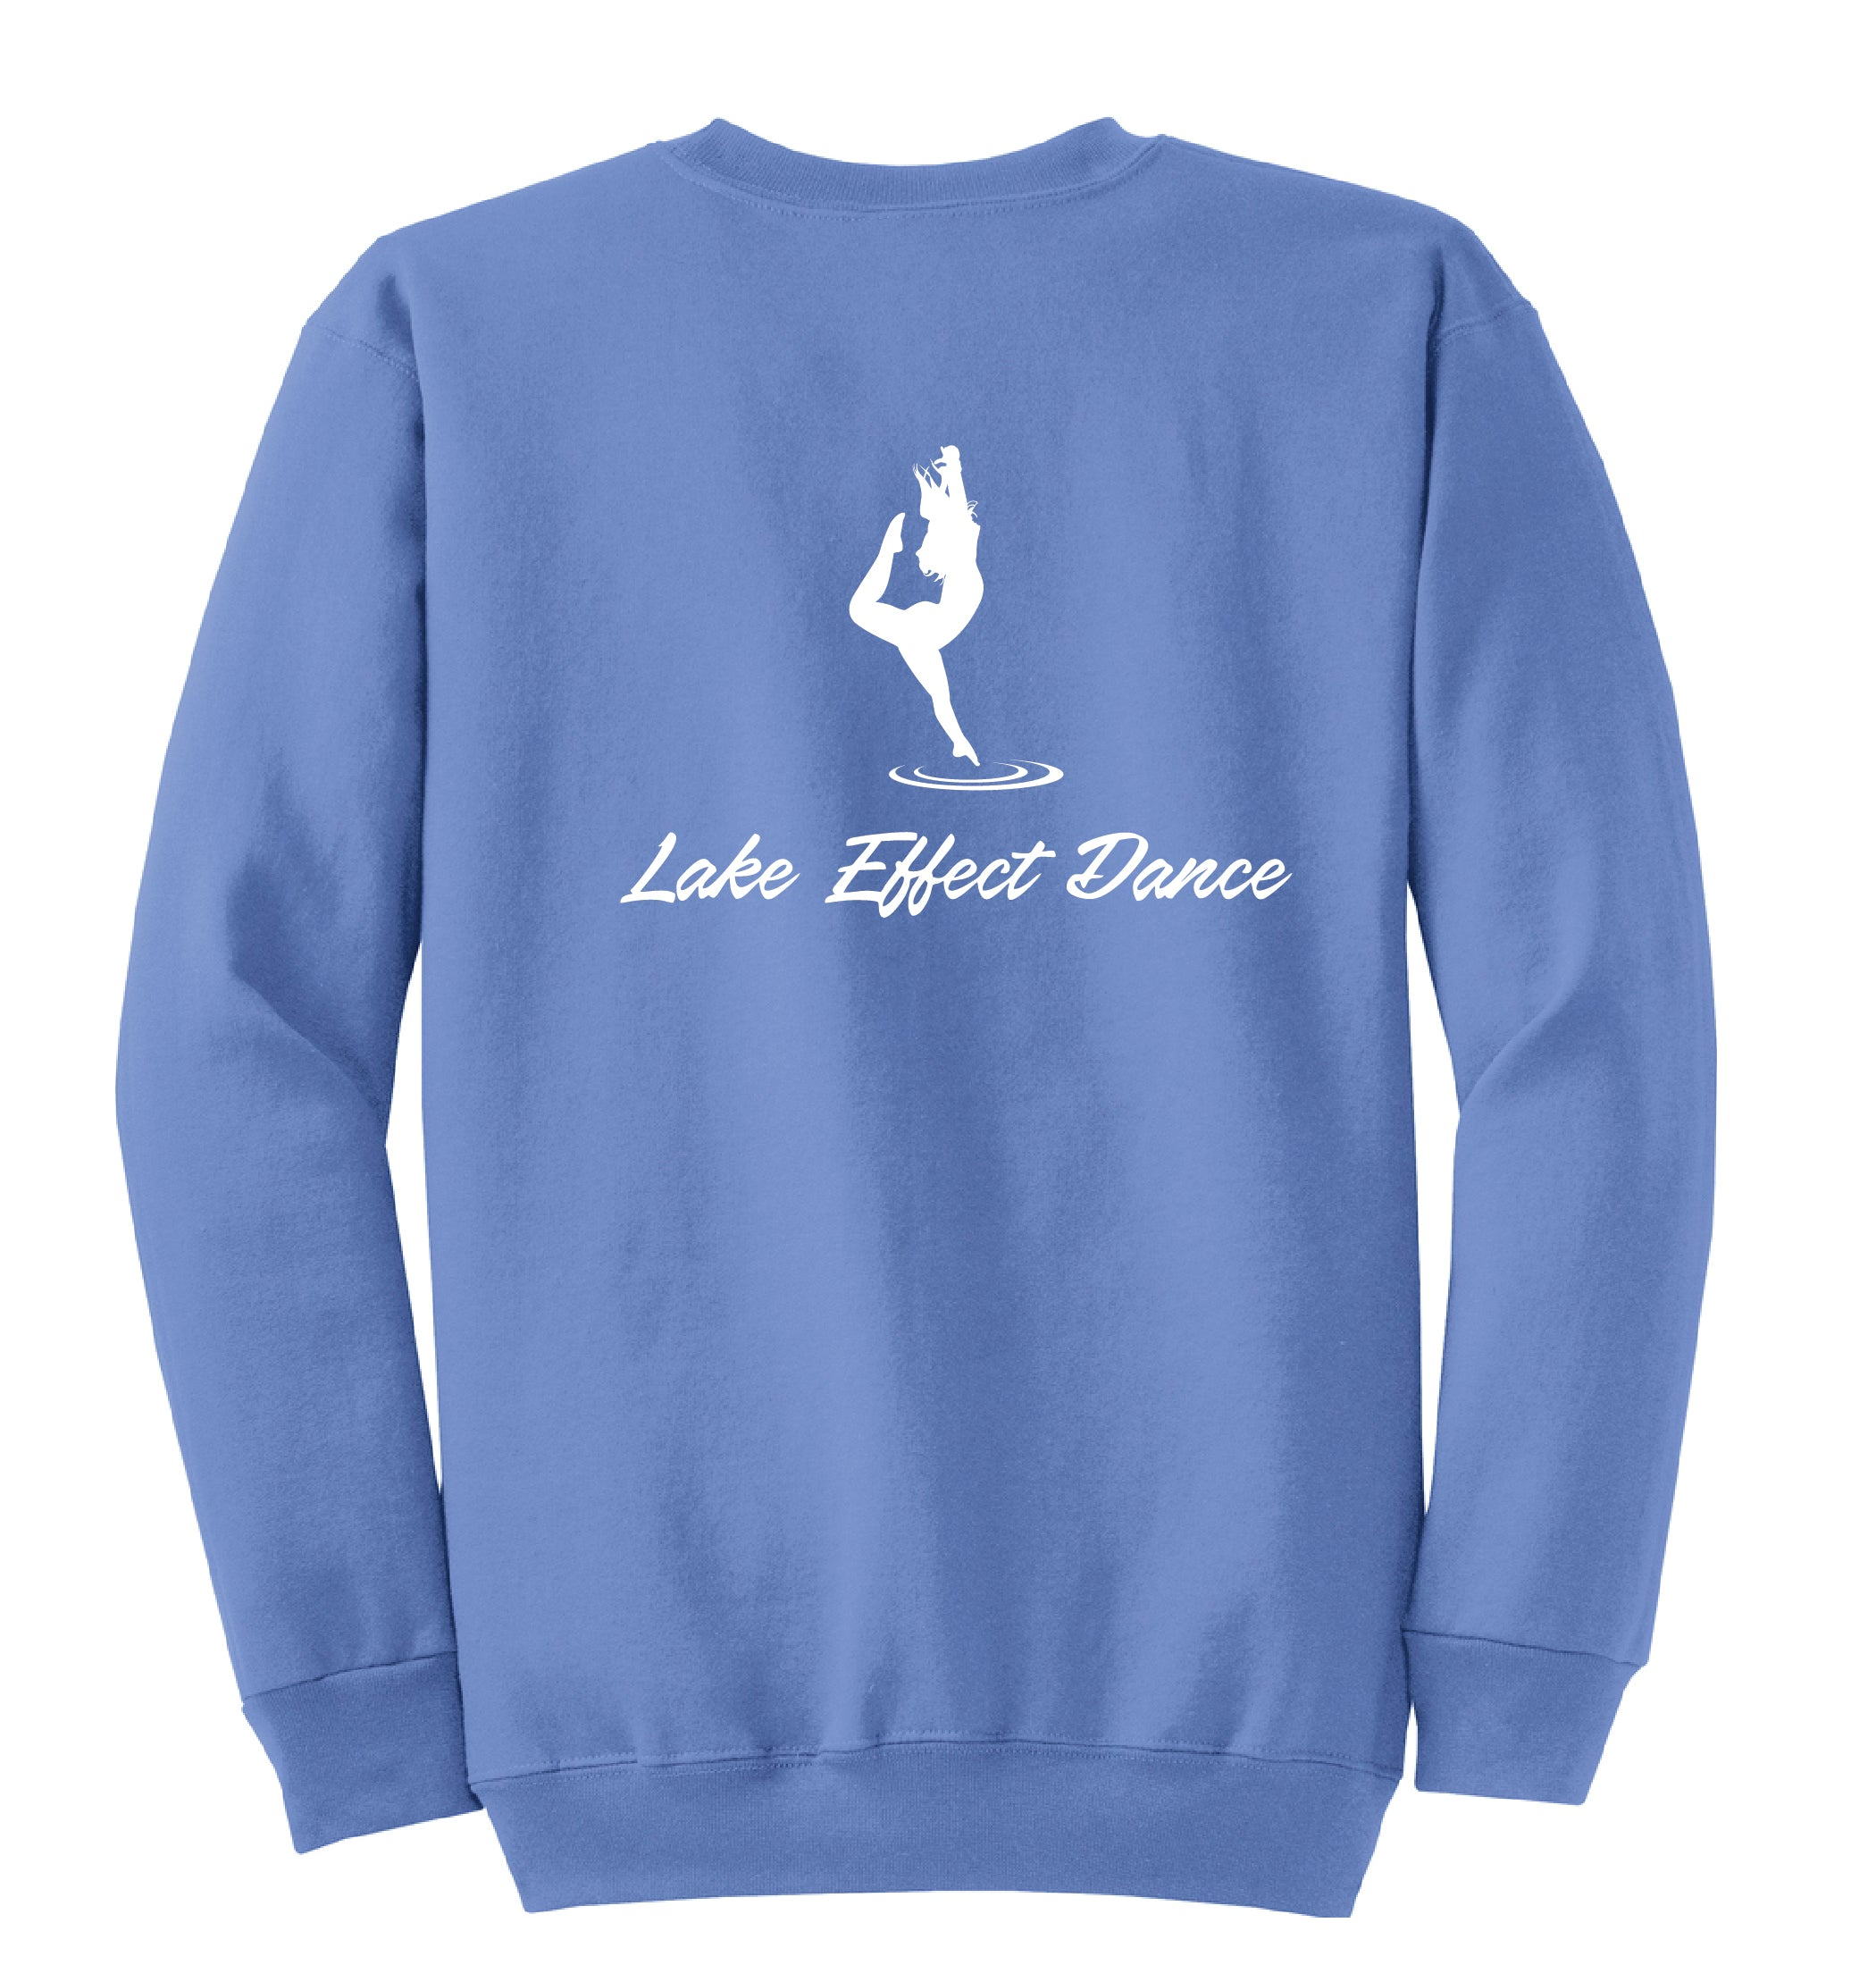 A) ADULT & YOUTH CREW NECK SWEATSHIRTS